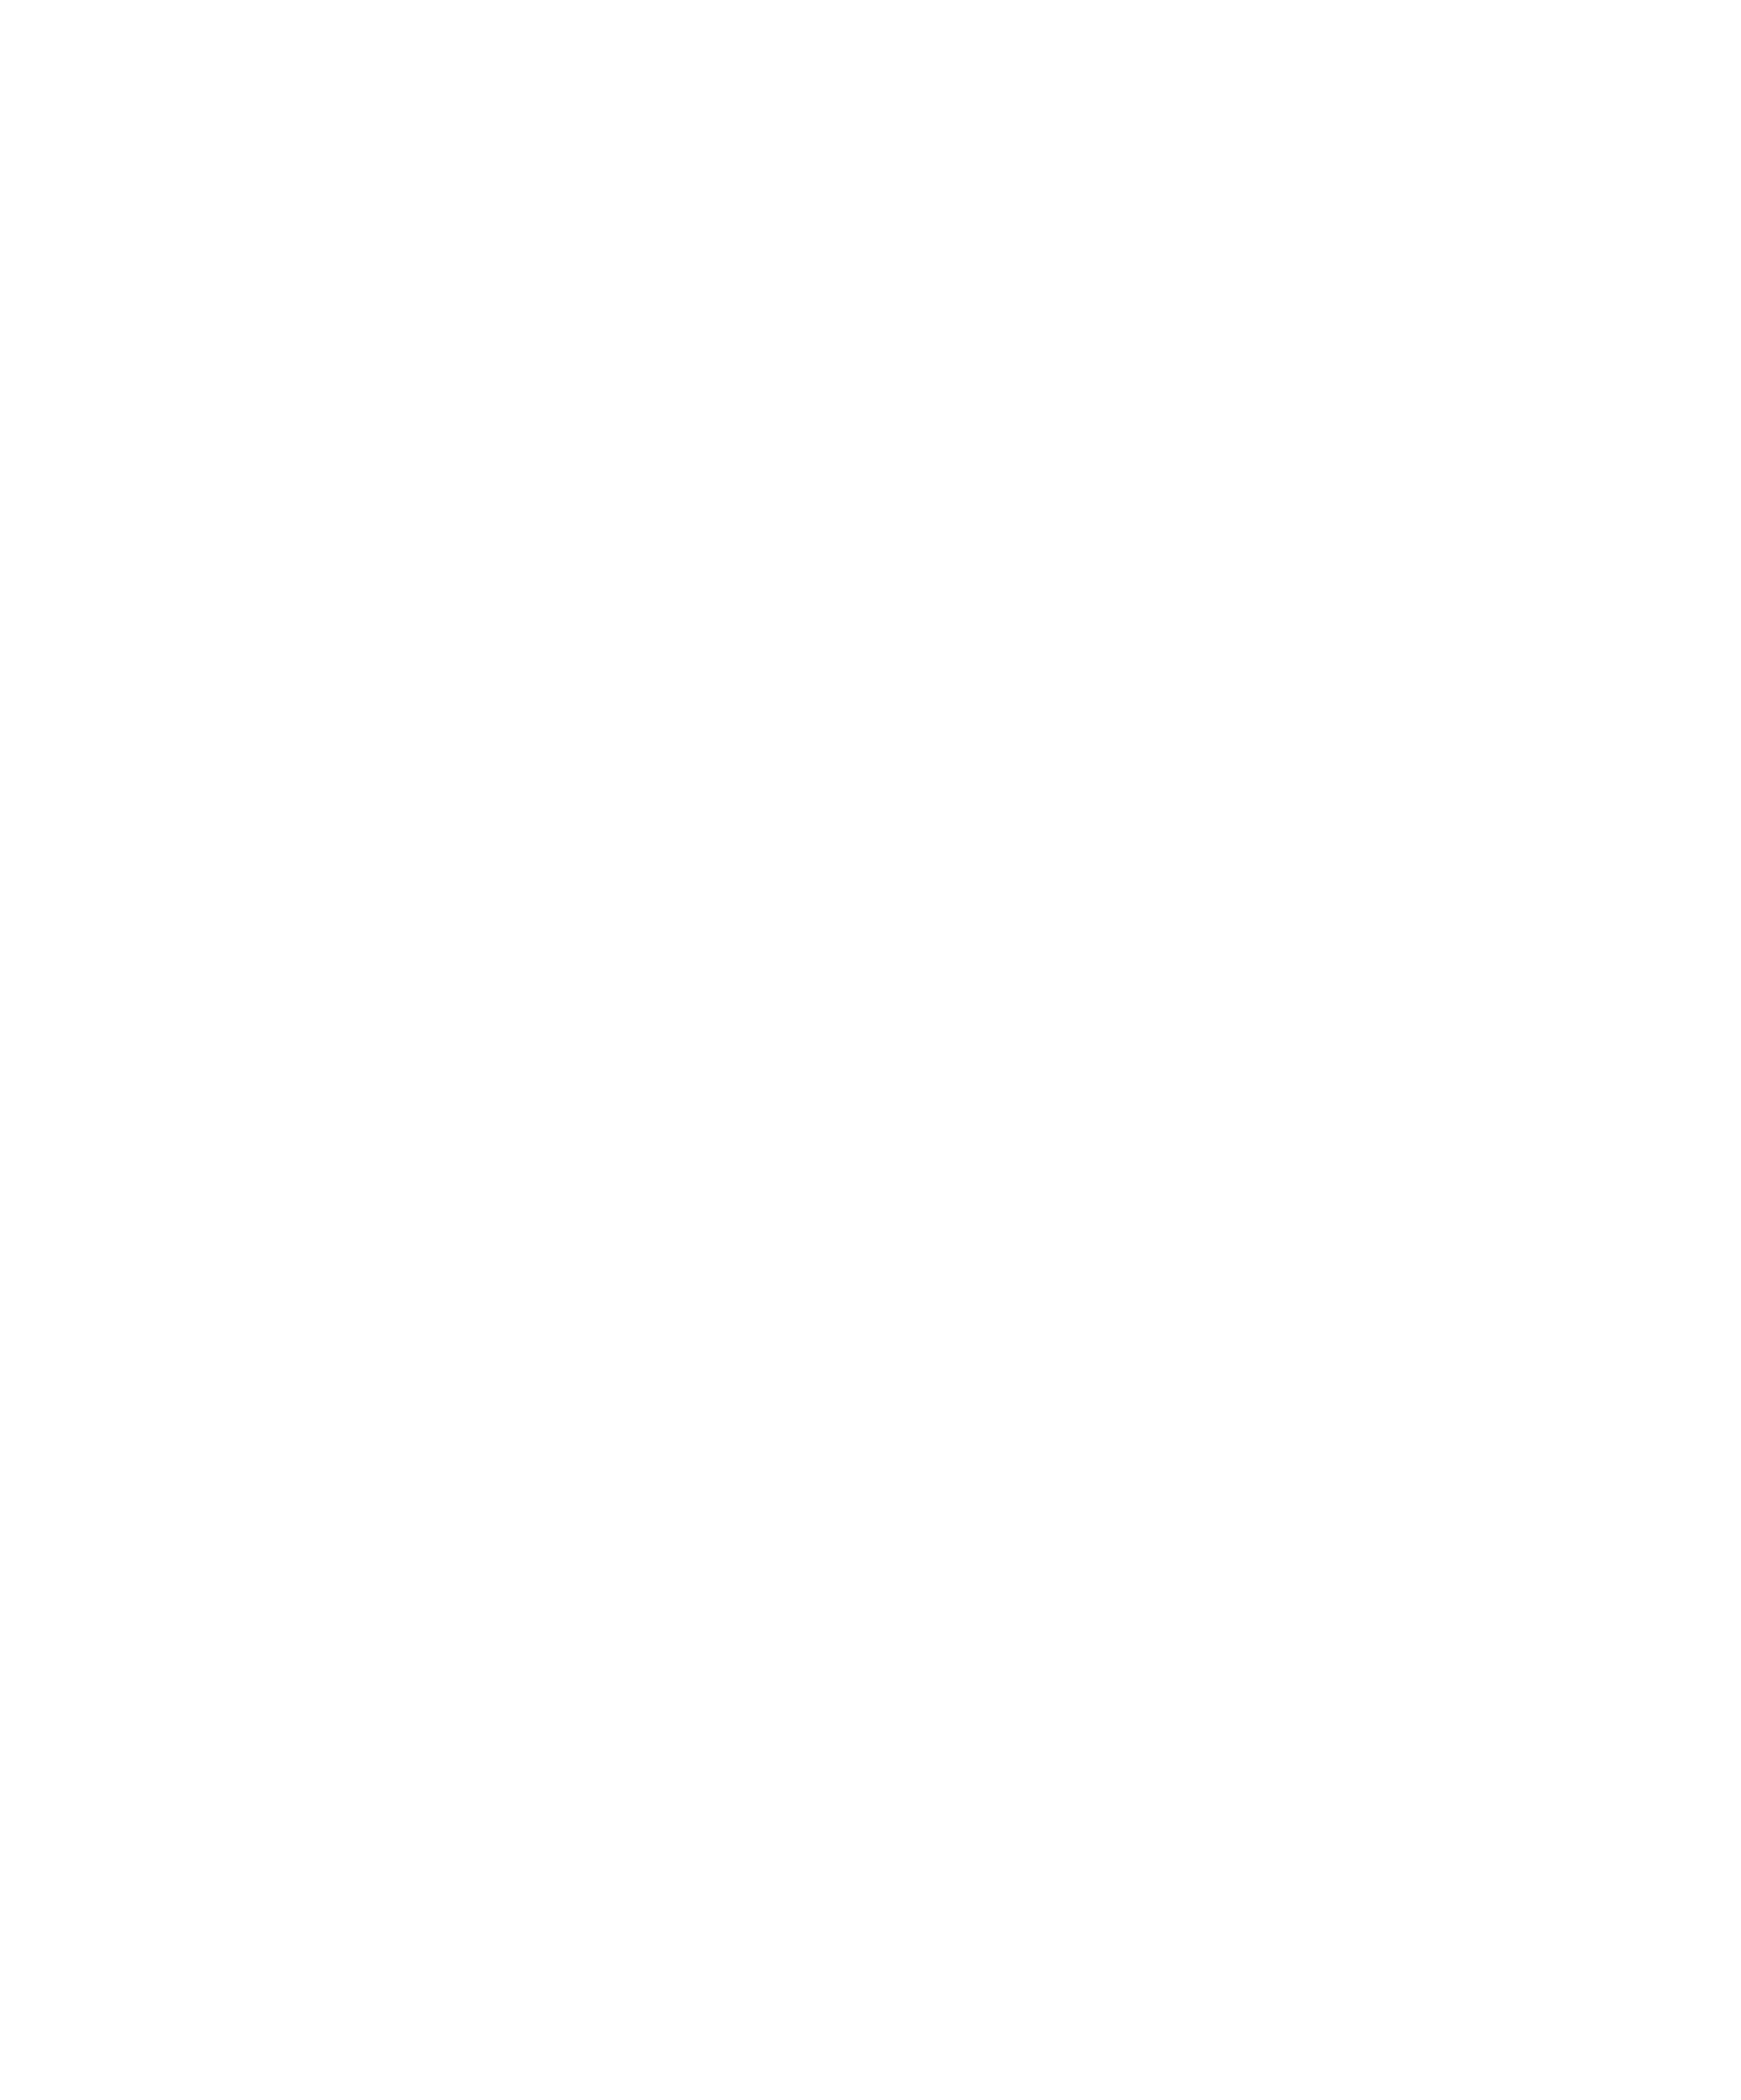 clipart transparent library Happy birthday black and white clipart. Clip art image gallery